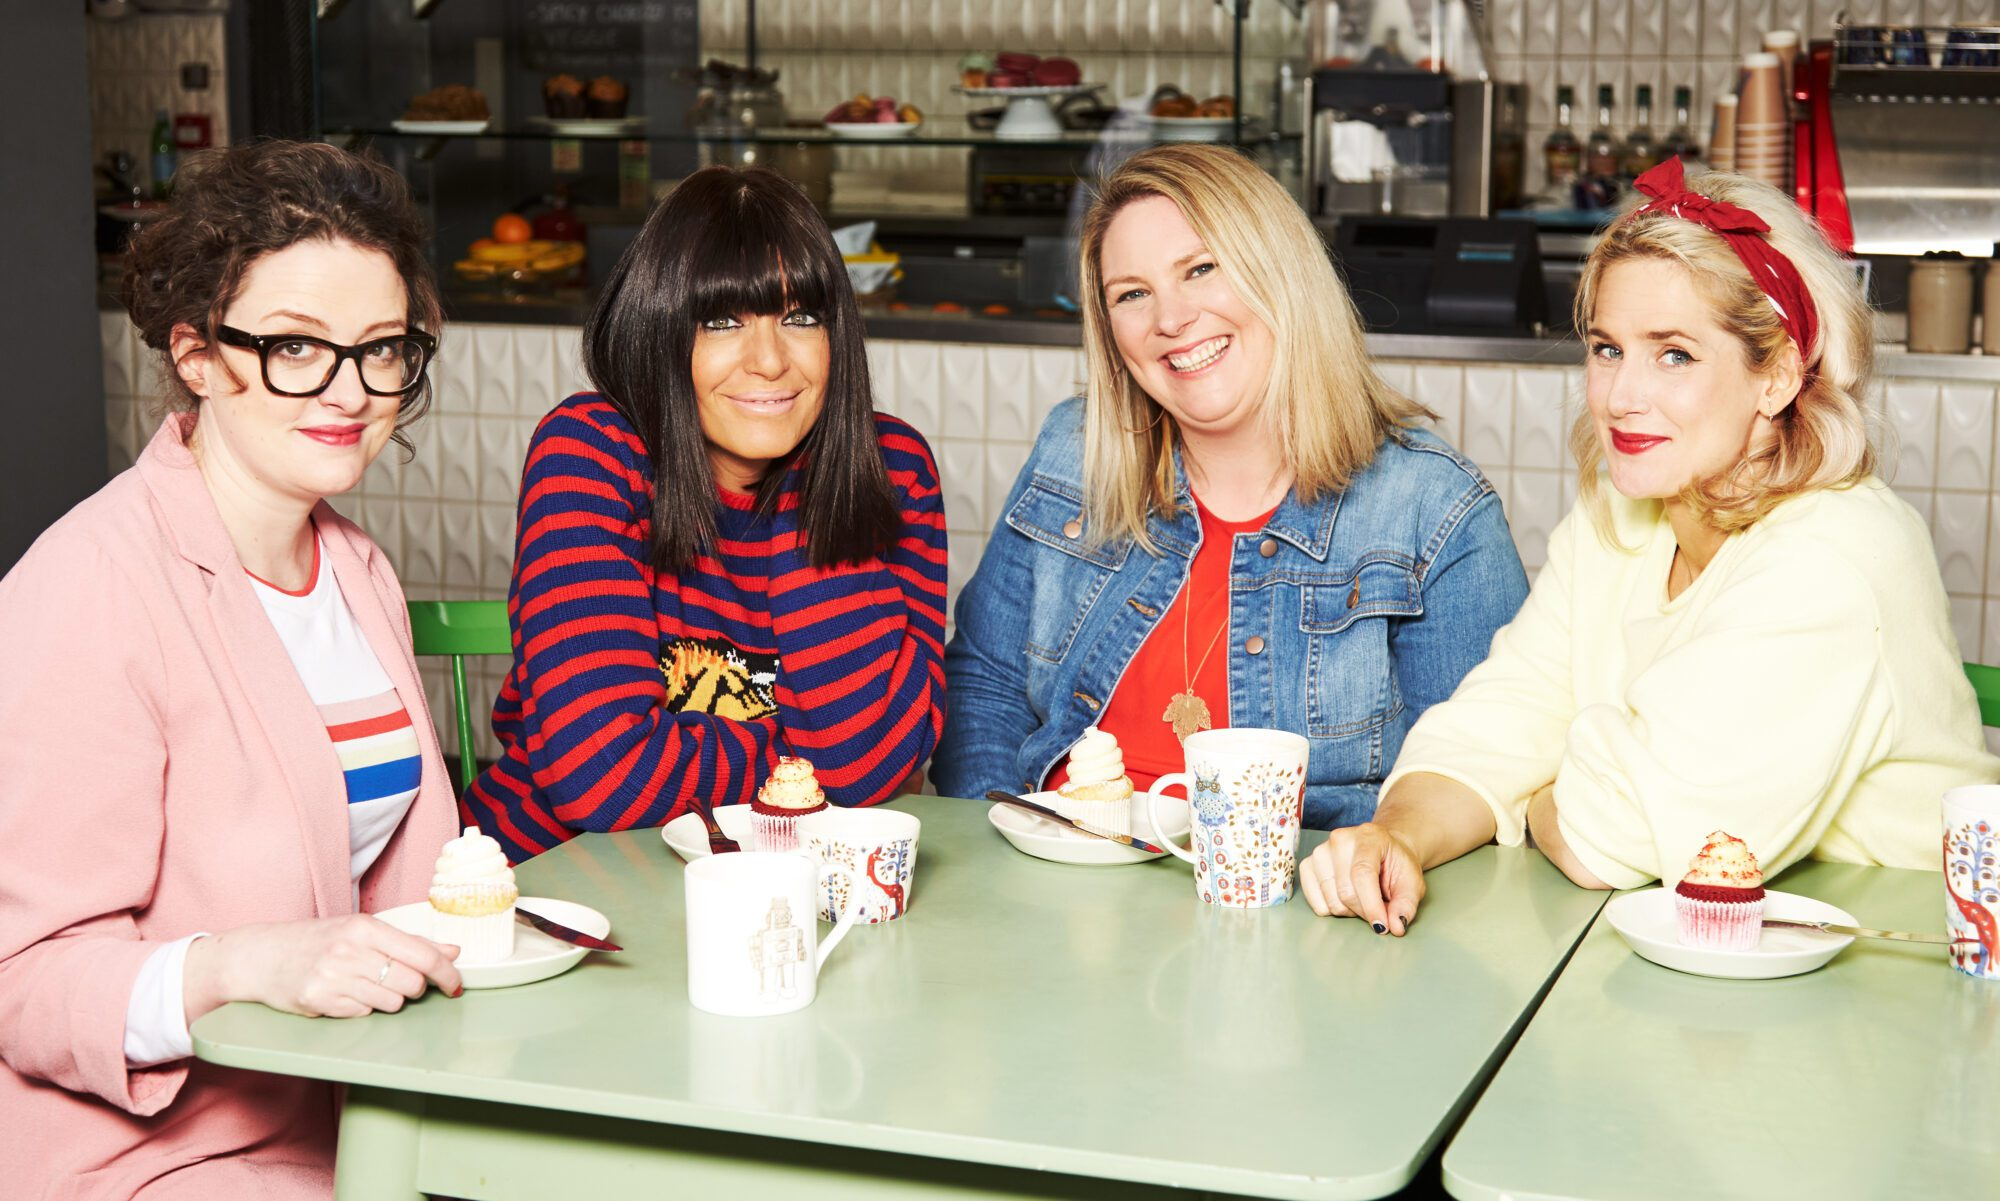 Claudia Winkleman stars alongside the Scummy Mummies and Mother Pukka to confess parenting fibs ahead of Big Little Lies (2)